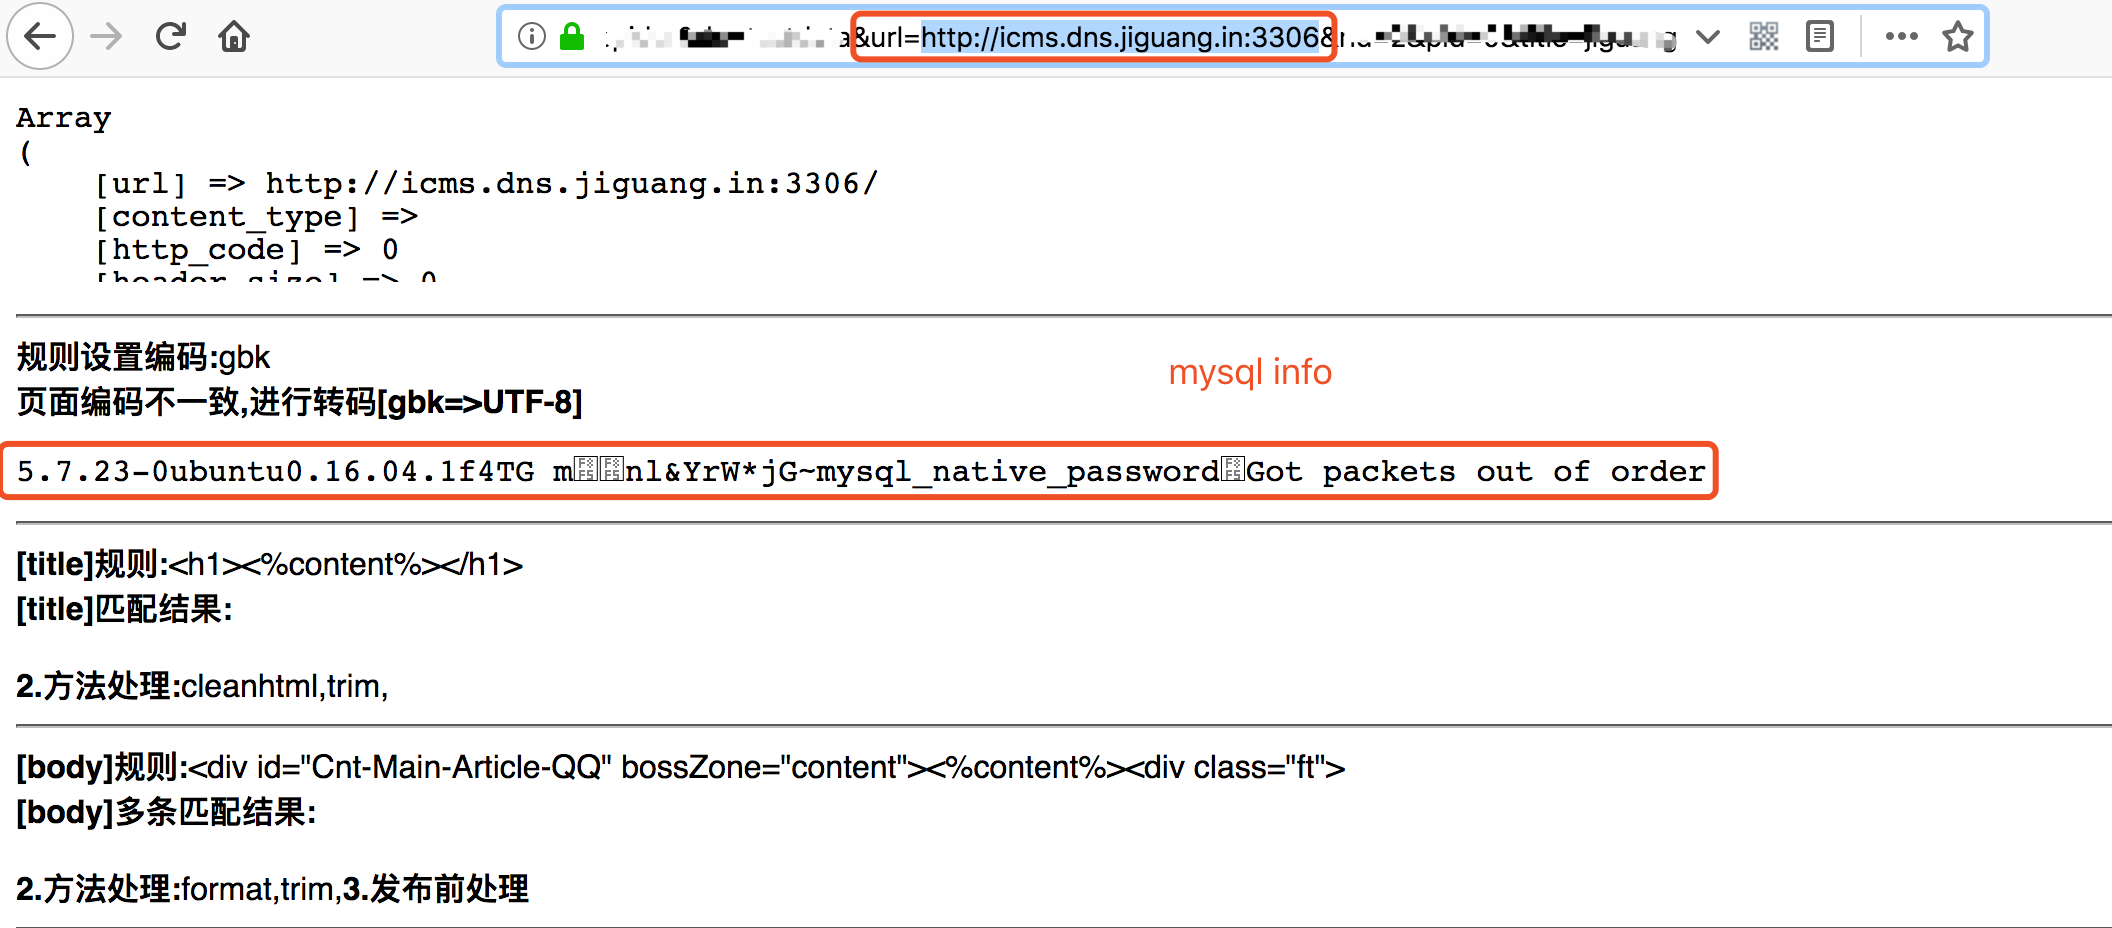 iCMS V7 0 11 Has A SSRF vulnerability · Issue #40